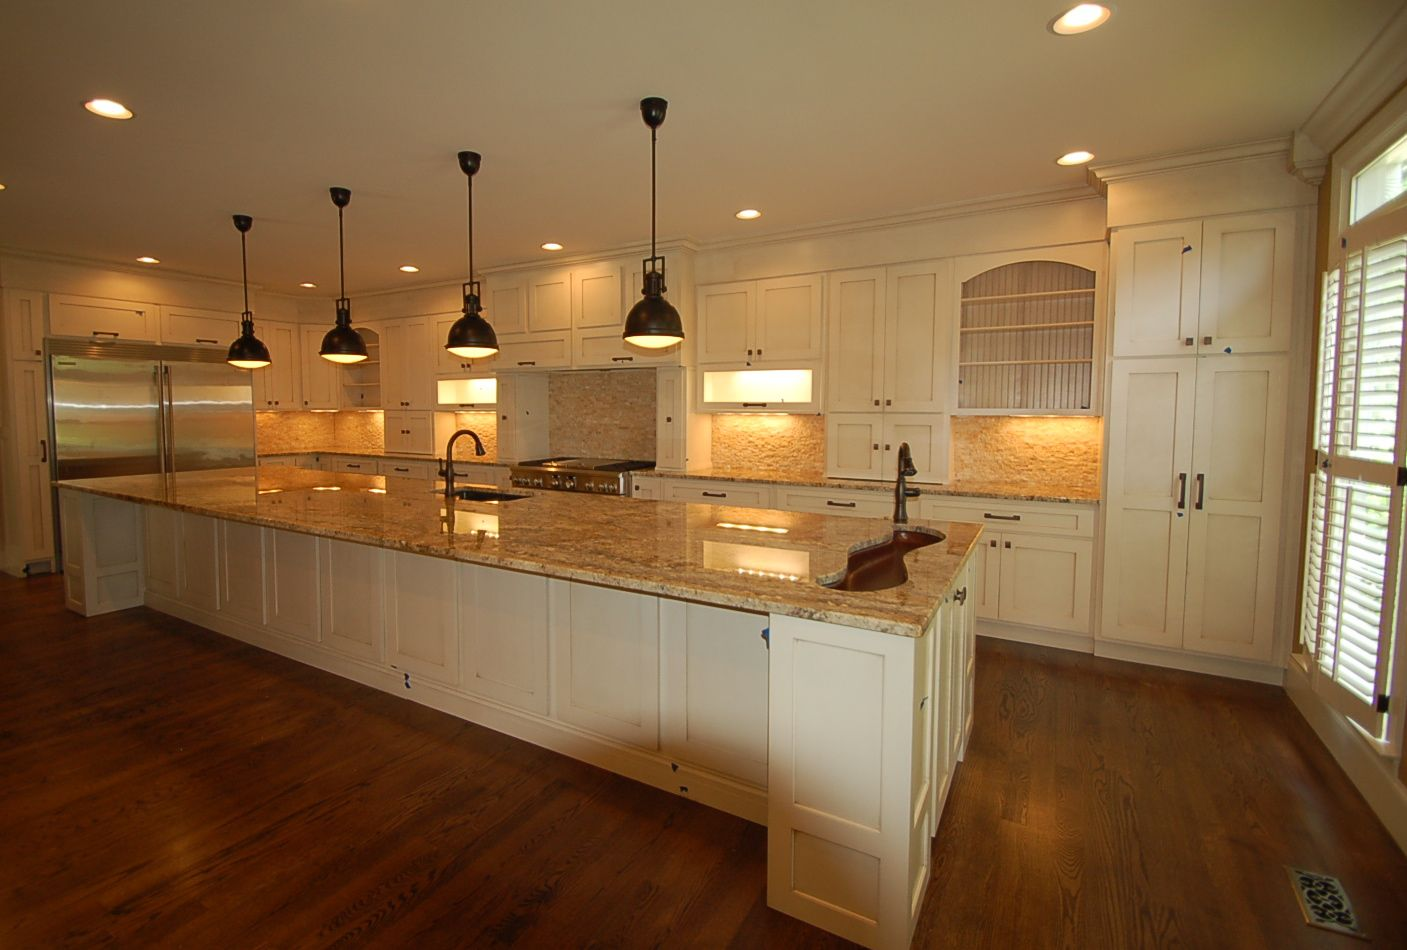 lighting under cabinets. Multiple Lighting In The Kitchen. Pendant Lights, Under Cabinet Can Lighting, Cabinets H